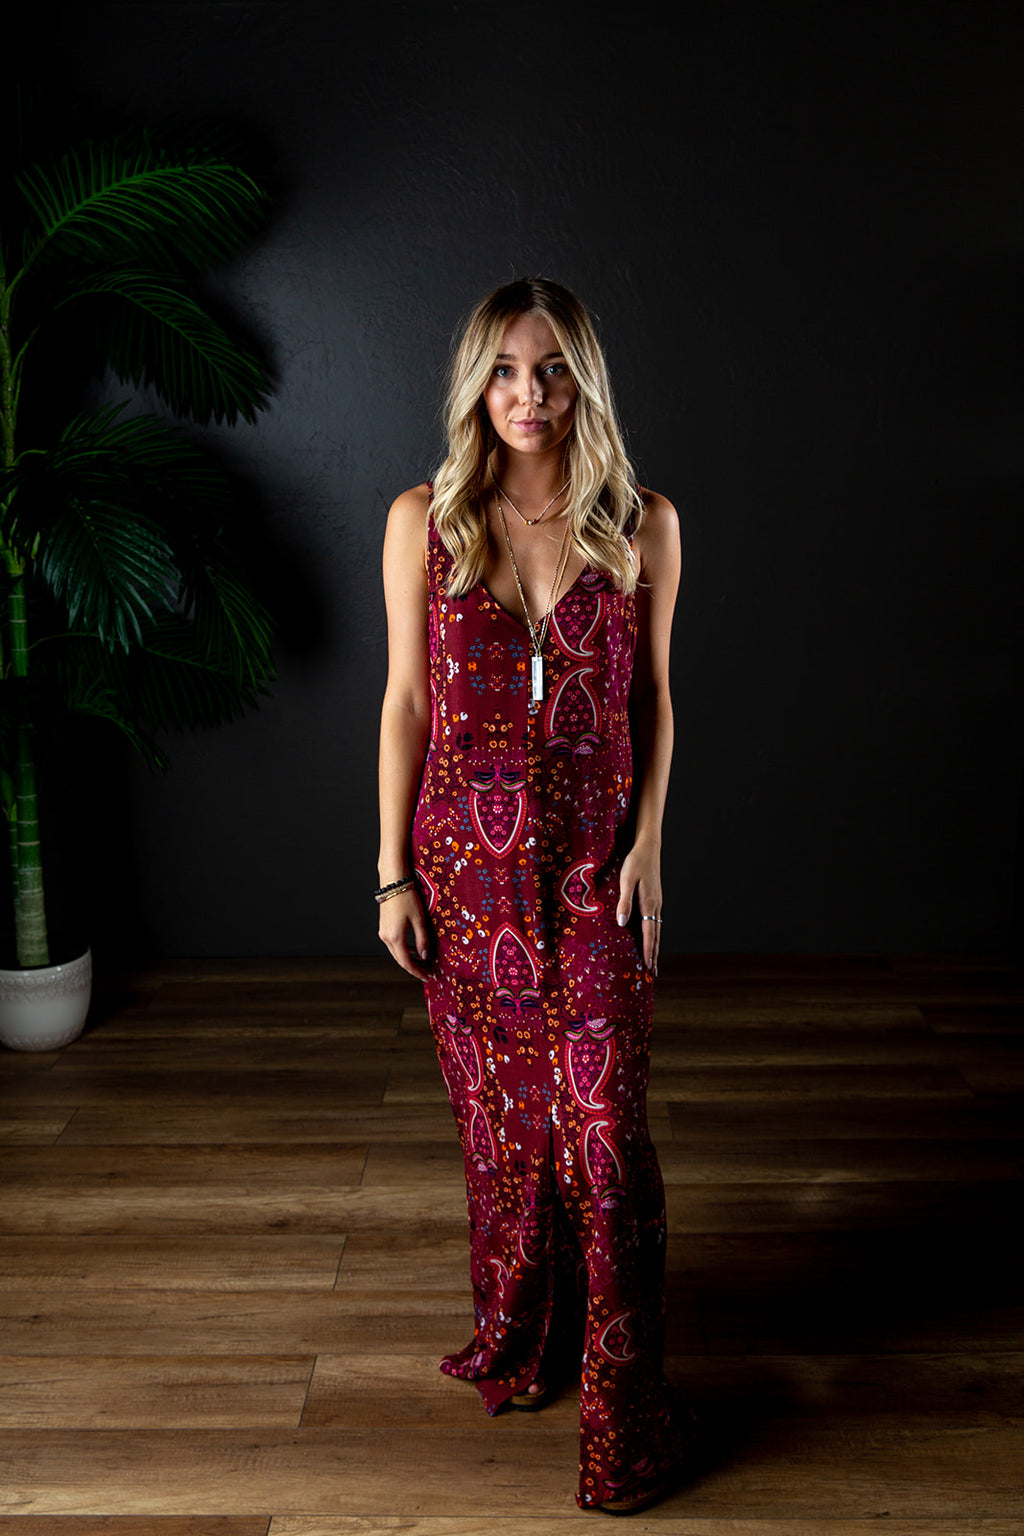 JULIE MAXI DRESS BURGUNDY